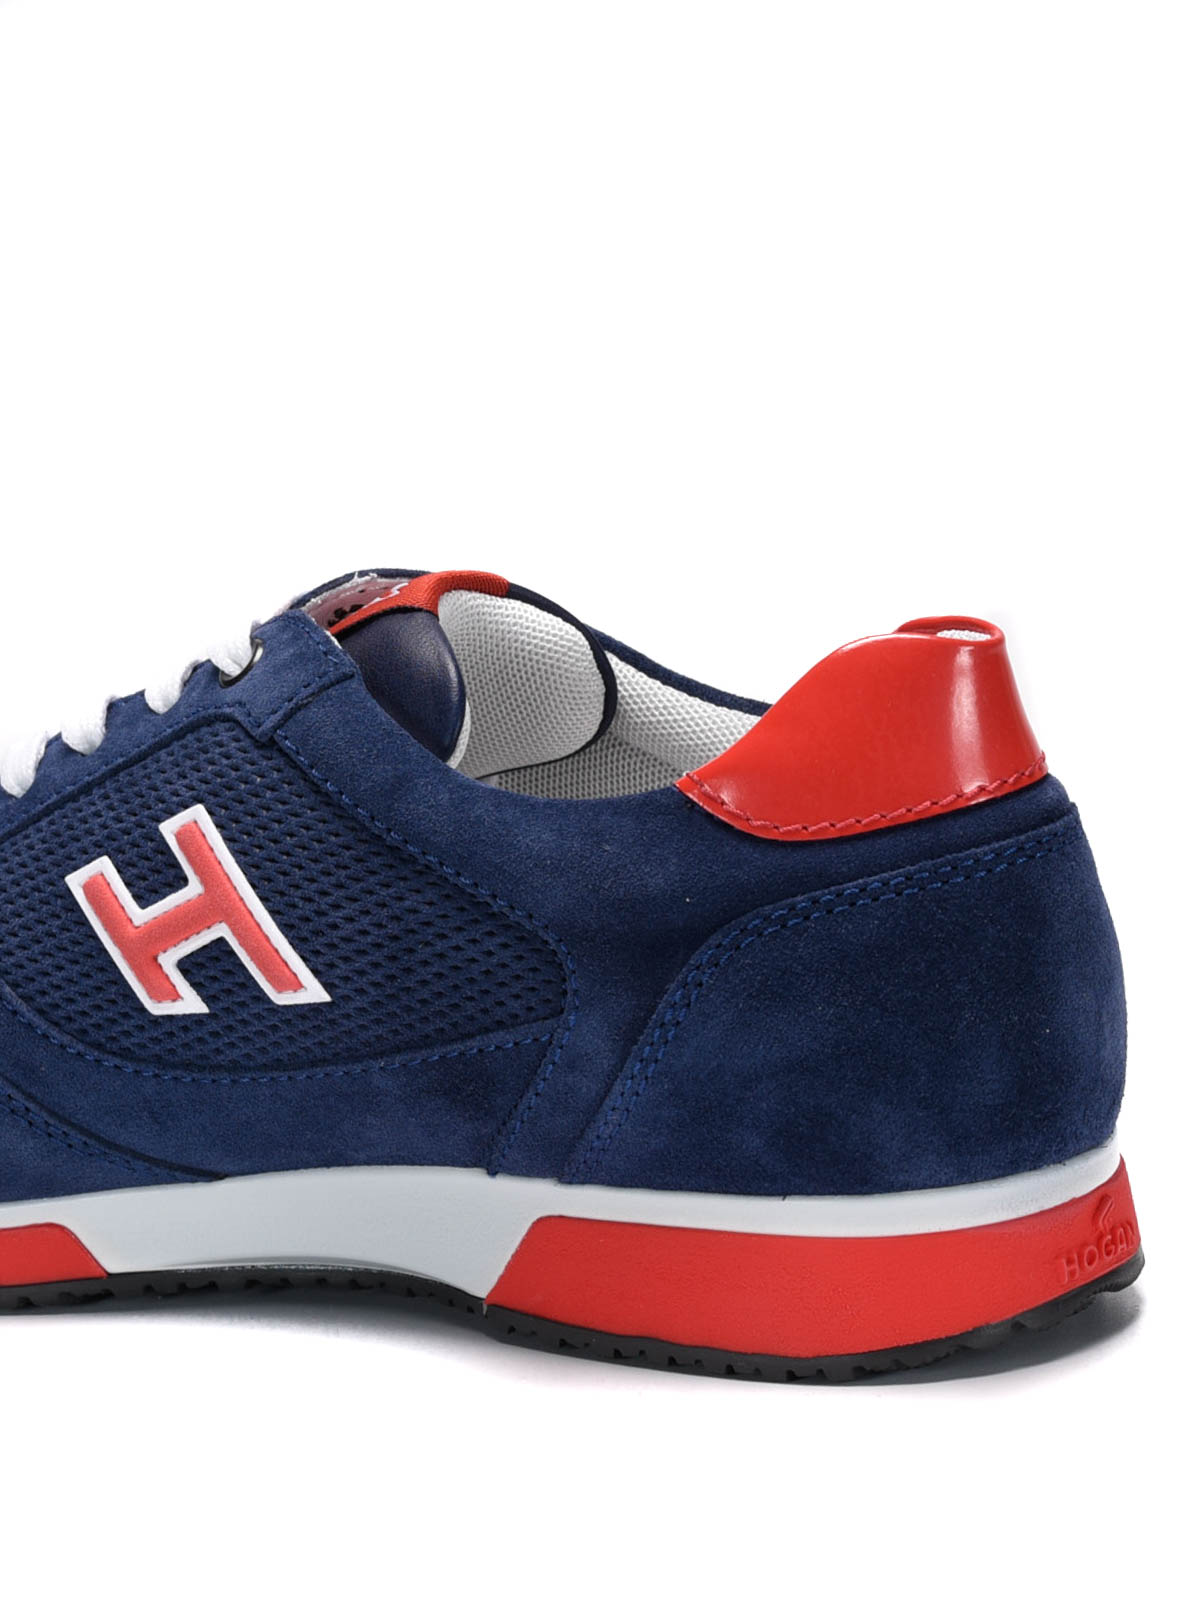 outlet hogan online opinioni